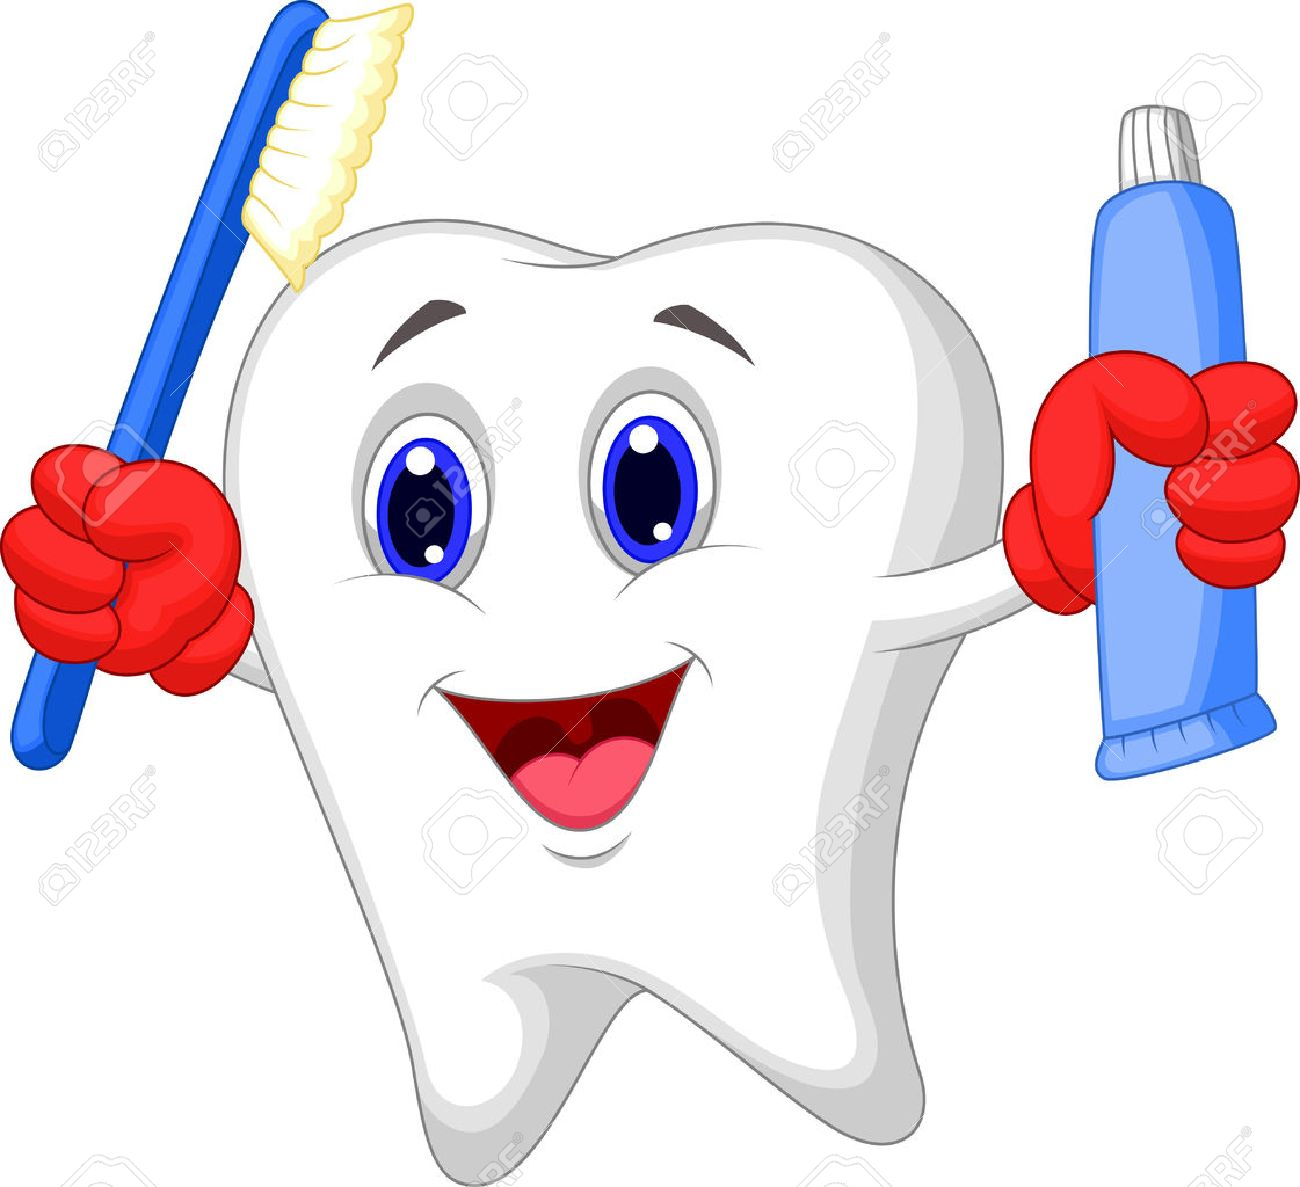 Tooth cartoon holding toothbrush and toothpaste Stock Vector - 23517213